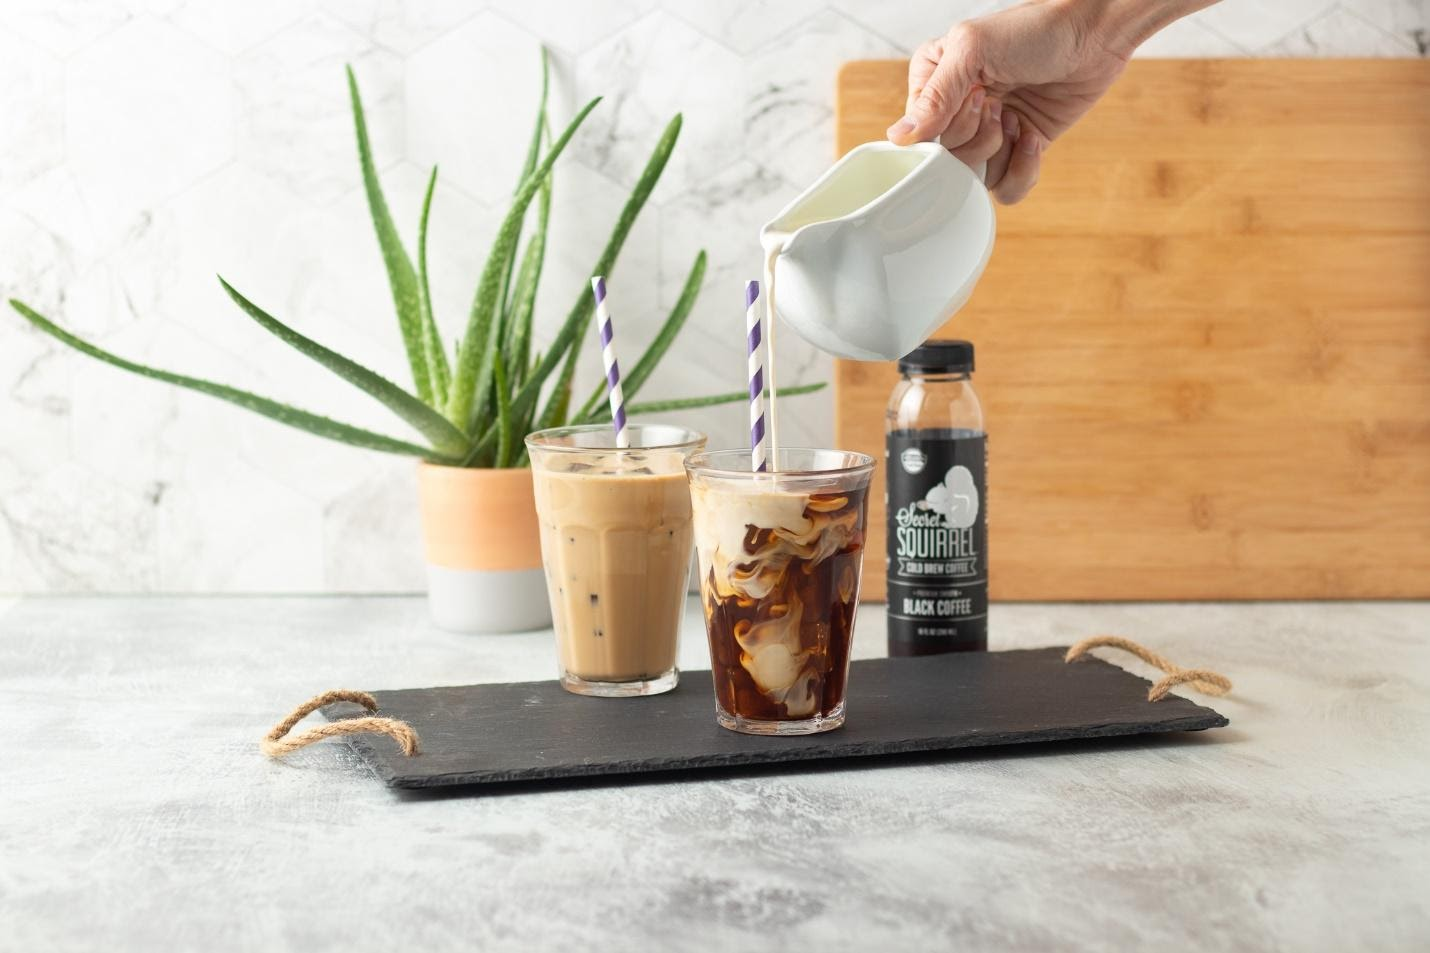 pouring milk in glass of Secret Squirrel cold brew coffee with bottle in the background